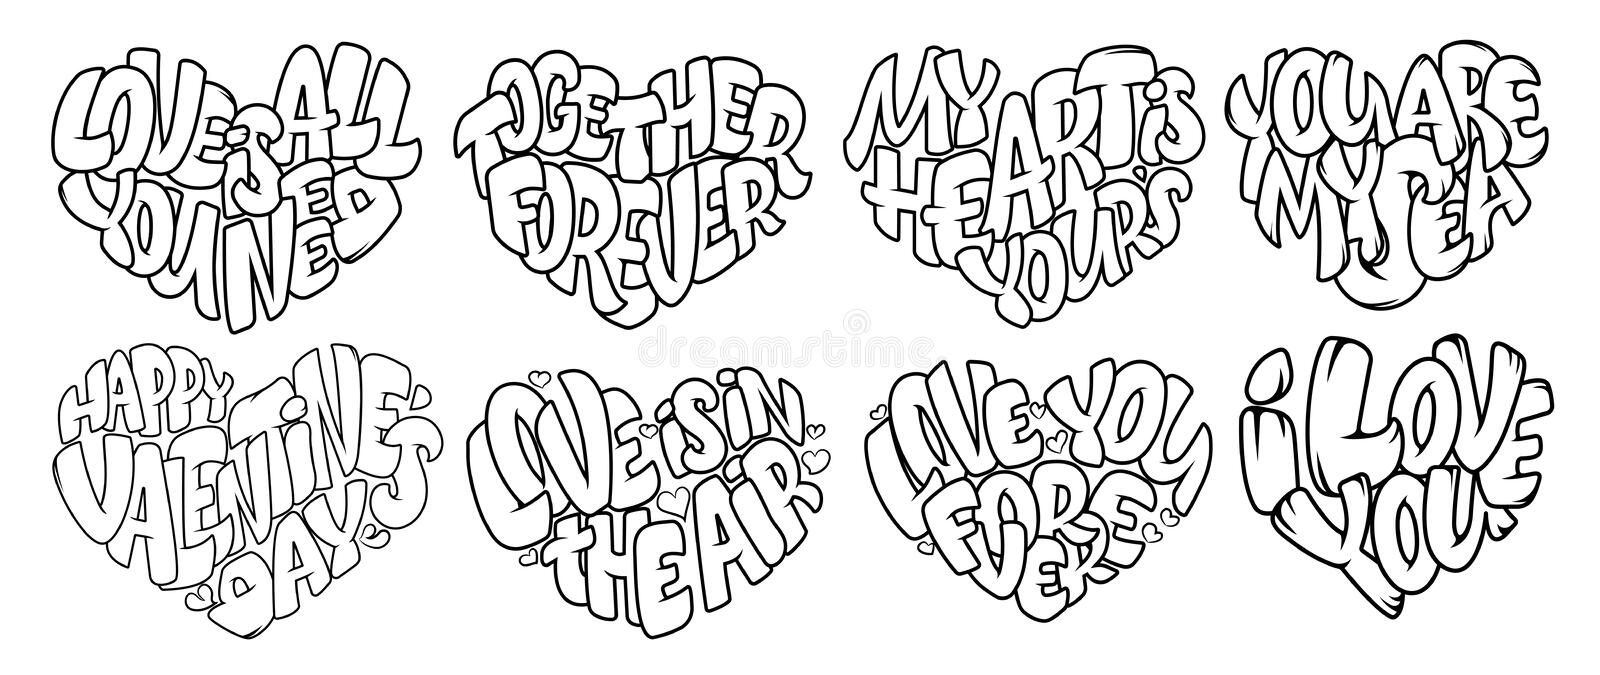 Coloring Pages For Adult Design For Wedding Invitations And Valentine S Day Lettering In Heart Quote About Love In Stock Vector Illustration Of Holiday Abstract 117593681